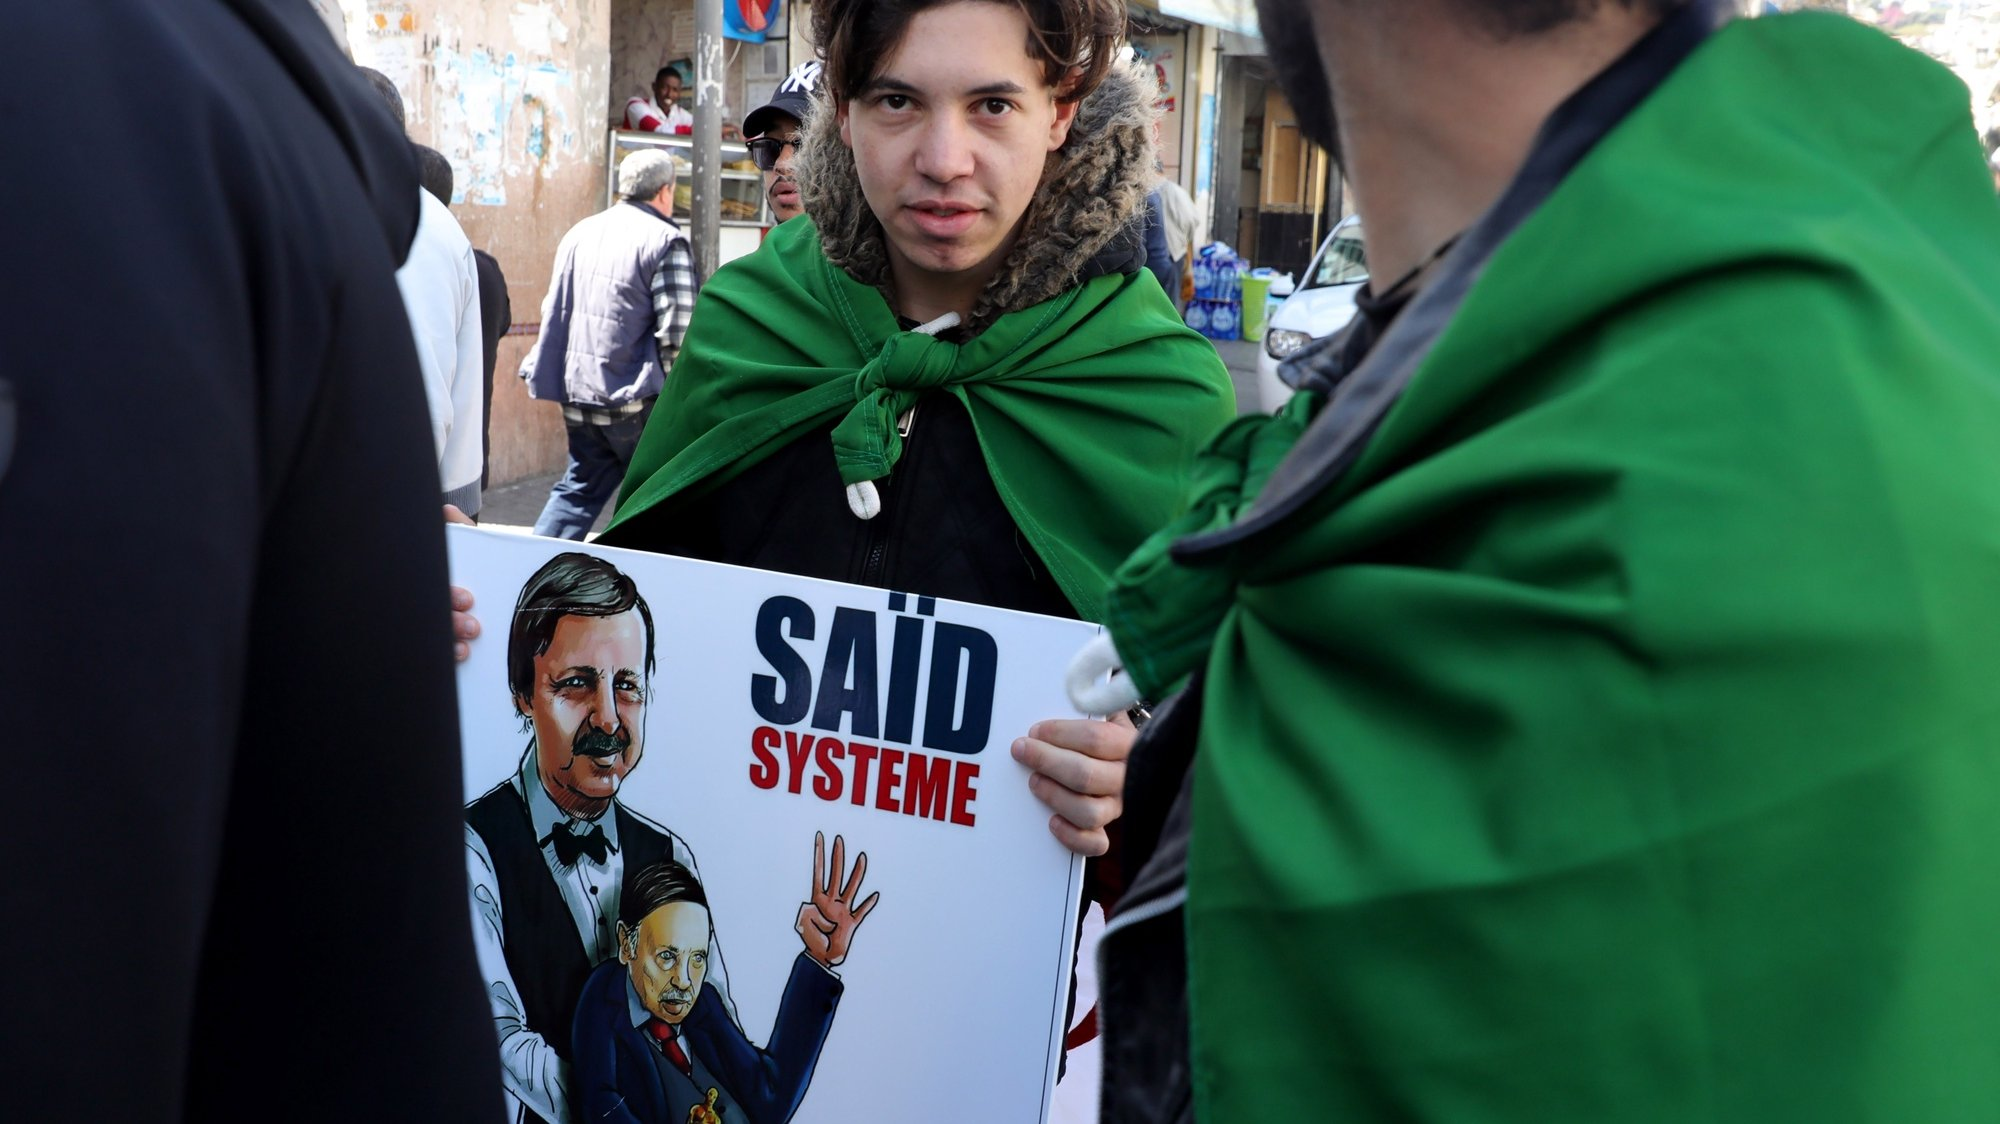 epa07515714 (17/20) Algerian youngsters from SOS Bab El Oued to join a protest against the then President Abdelaziz Bouteflika in Algiers, Algeria, 29 March 2019. Placard depicts former President Abdelaziz Bouteflika being moved like a puppet by his advisor and brother Said Bouteflika. In February 2019 and all Fridays since, Algerians have been coming out to protest. At first, they were asking Bouteflika to renounce his candidacy for a fifth term, but it grew into demanding a change in the whole regime and a new Constitution that would allow fresh figures to emerge who could fix an economy that has led to 30 percent youth unemployment. Young men with no regular employment spend their time hanging around the streets of Algiers, doing small jobs for pocket money. They all have demands to fulfill, so they joined the rallies. Algeria's youth did not experience the War of Independence, the 1988 revolt nor the civil war. But they saw the fears their parents harbored over an uncertain future; few job prospects and a surge in emigration in search of a better future.  EPA/AMEL PAIN  ATTENTION: For the full PHOTO ESSAY text please see Advisory Notice epa07515696  and epa07515697